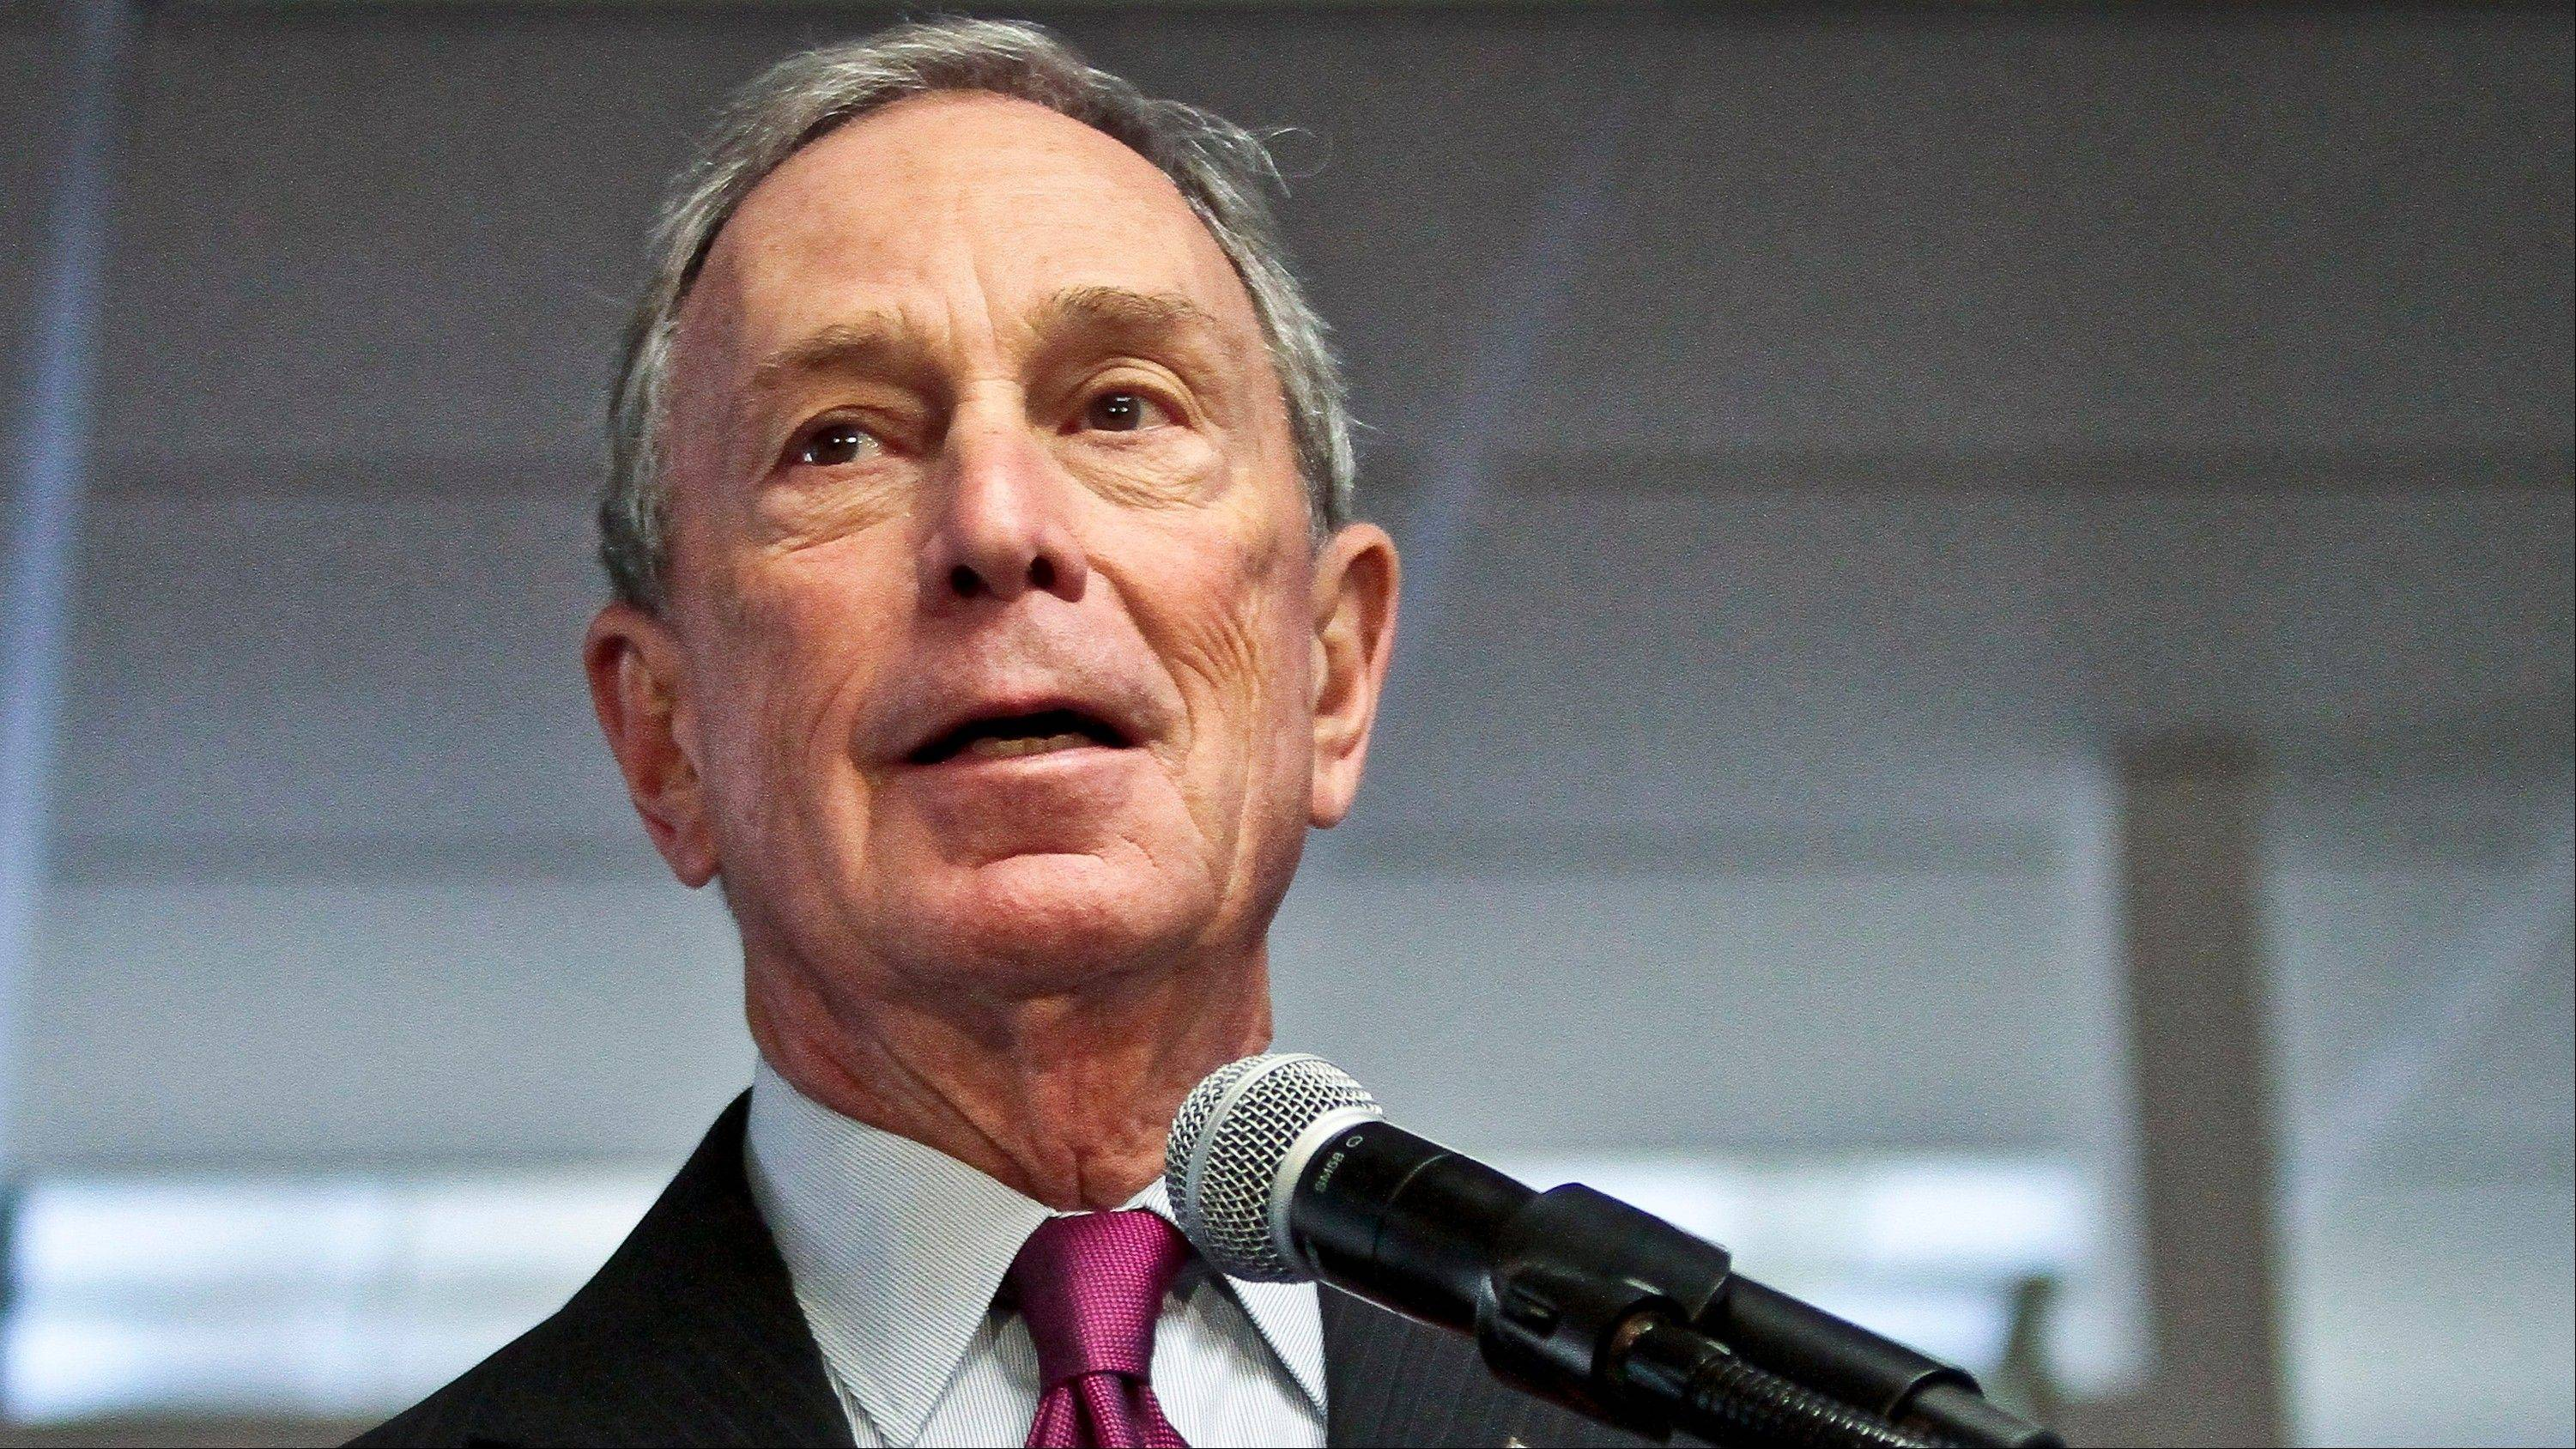 Billionaire former New York Mayor Michael Bloomberg has given $2.5 million to help Democrats defend their majority in the Senate.